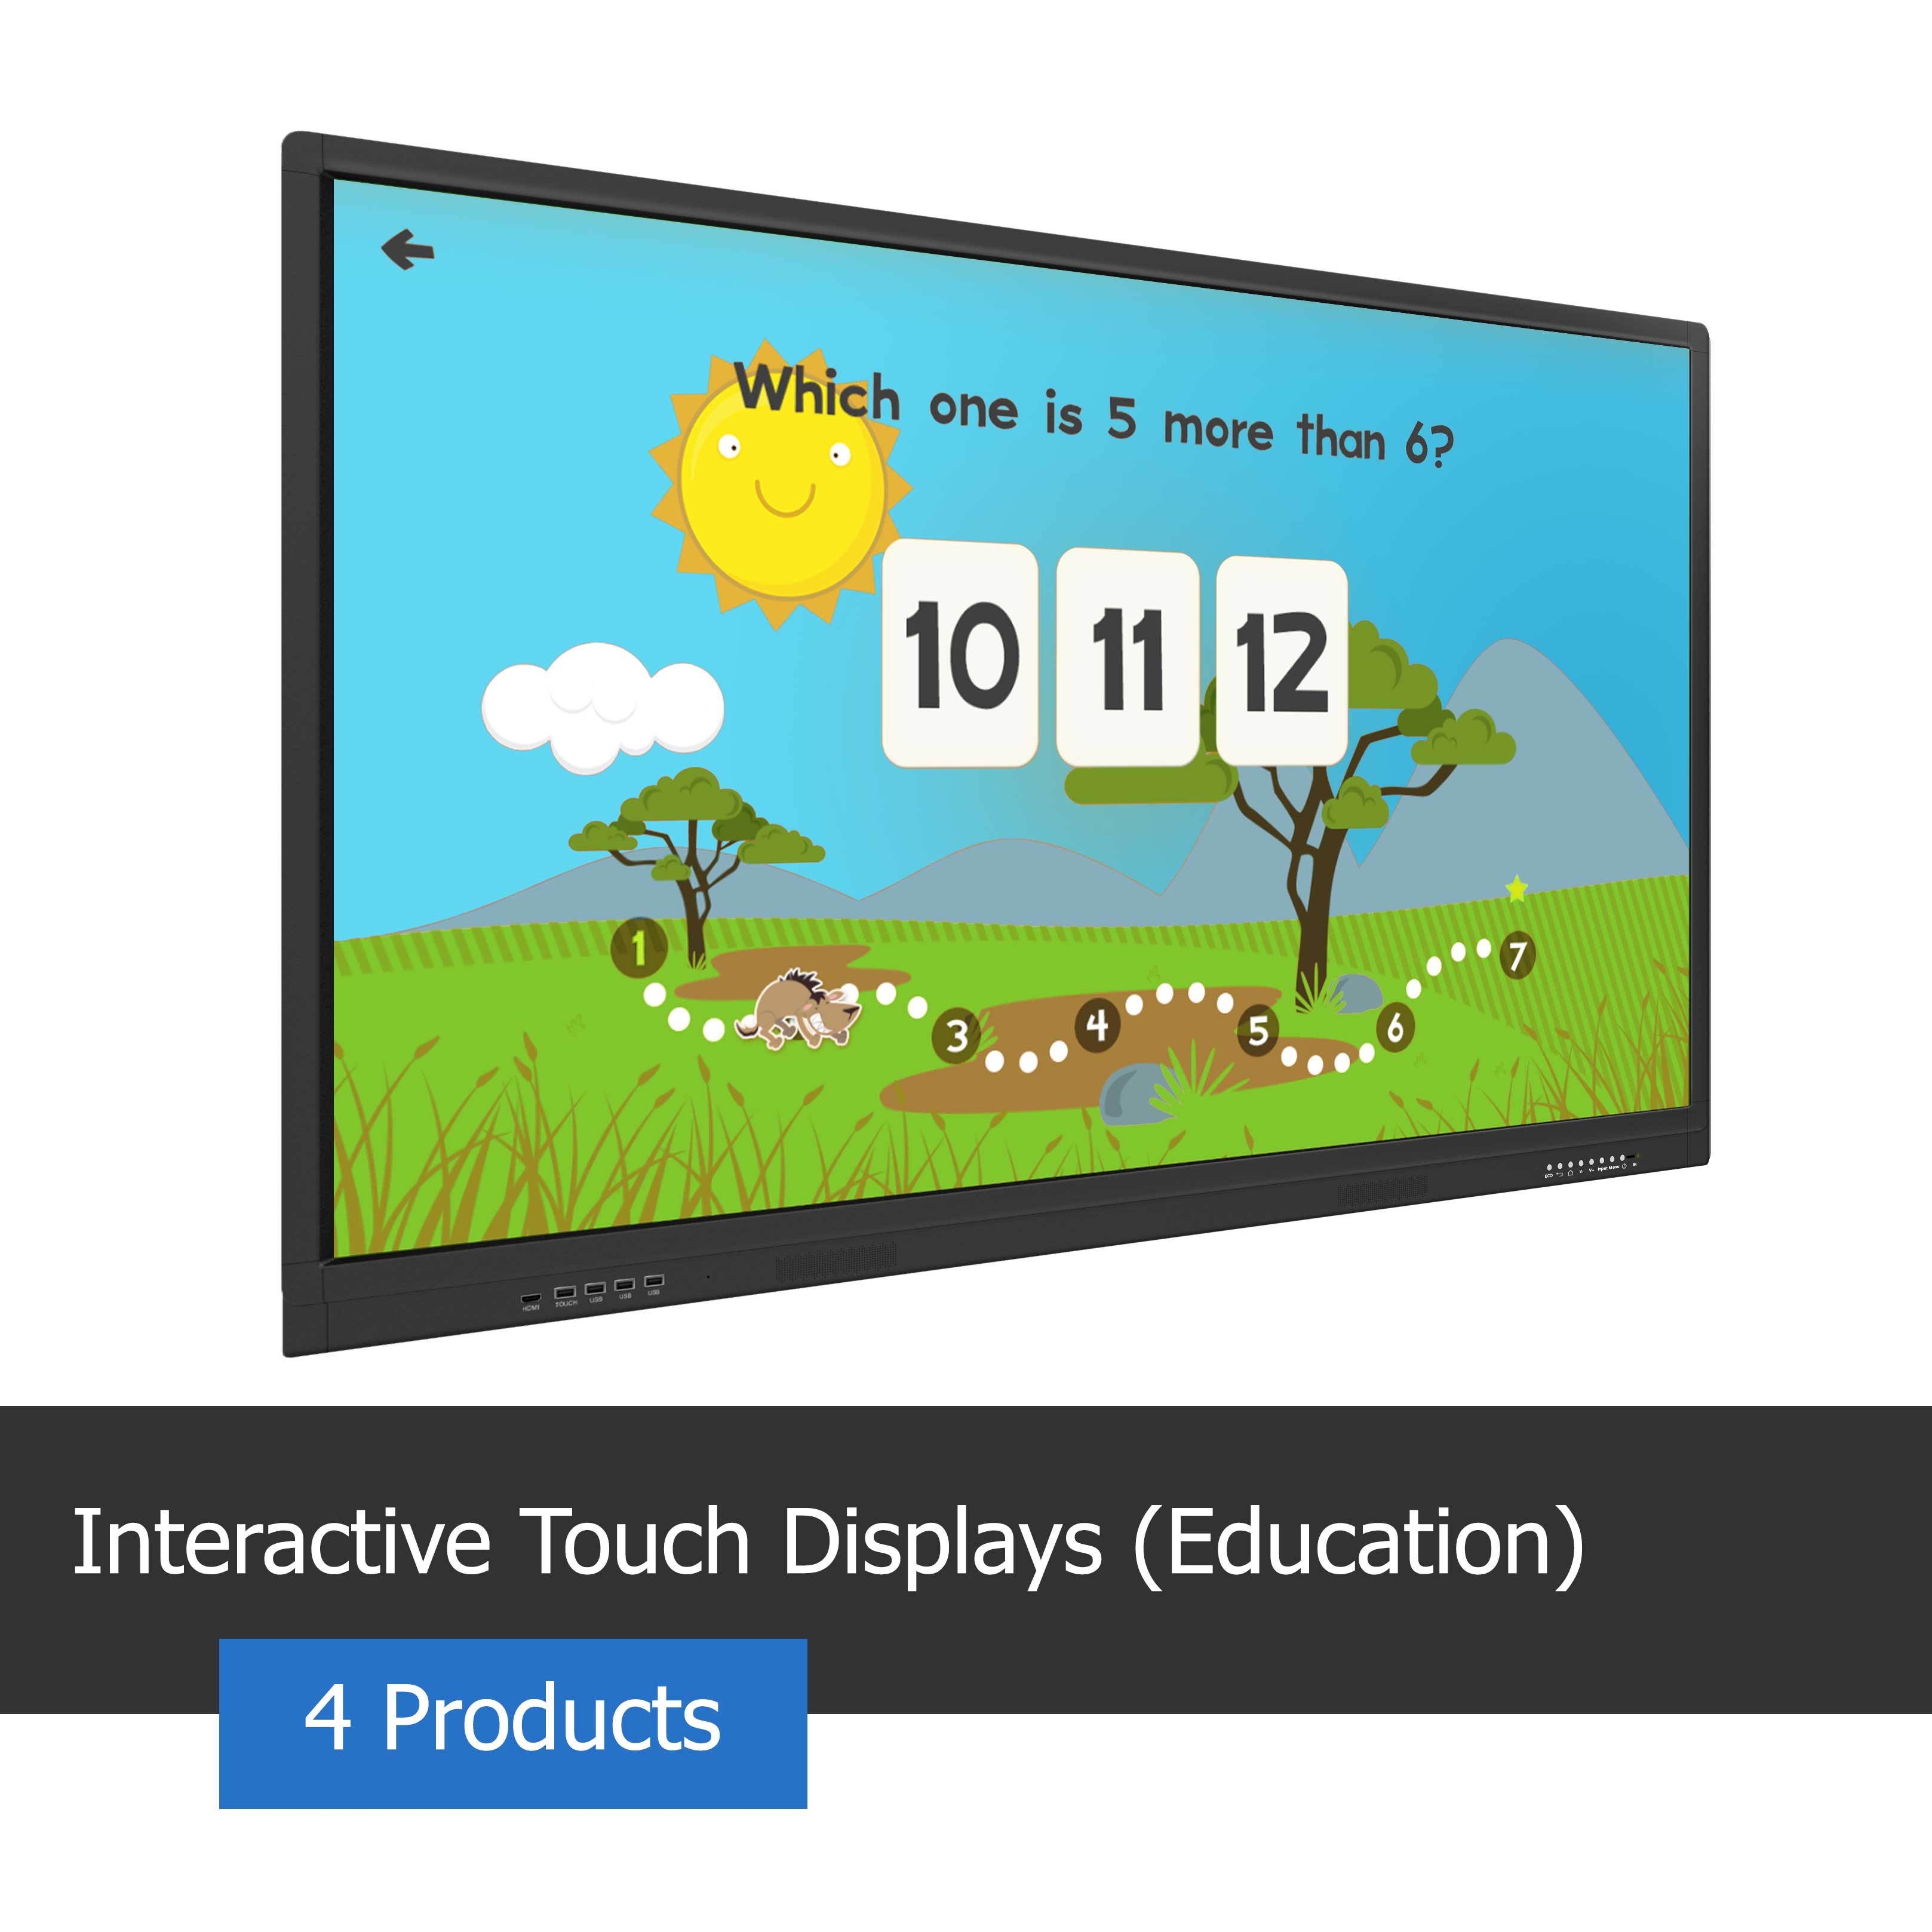 Image of an interactive touch display for the classroom